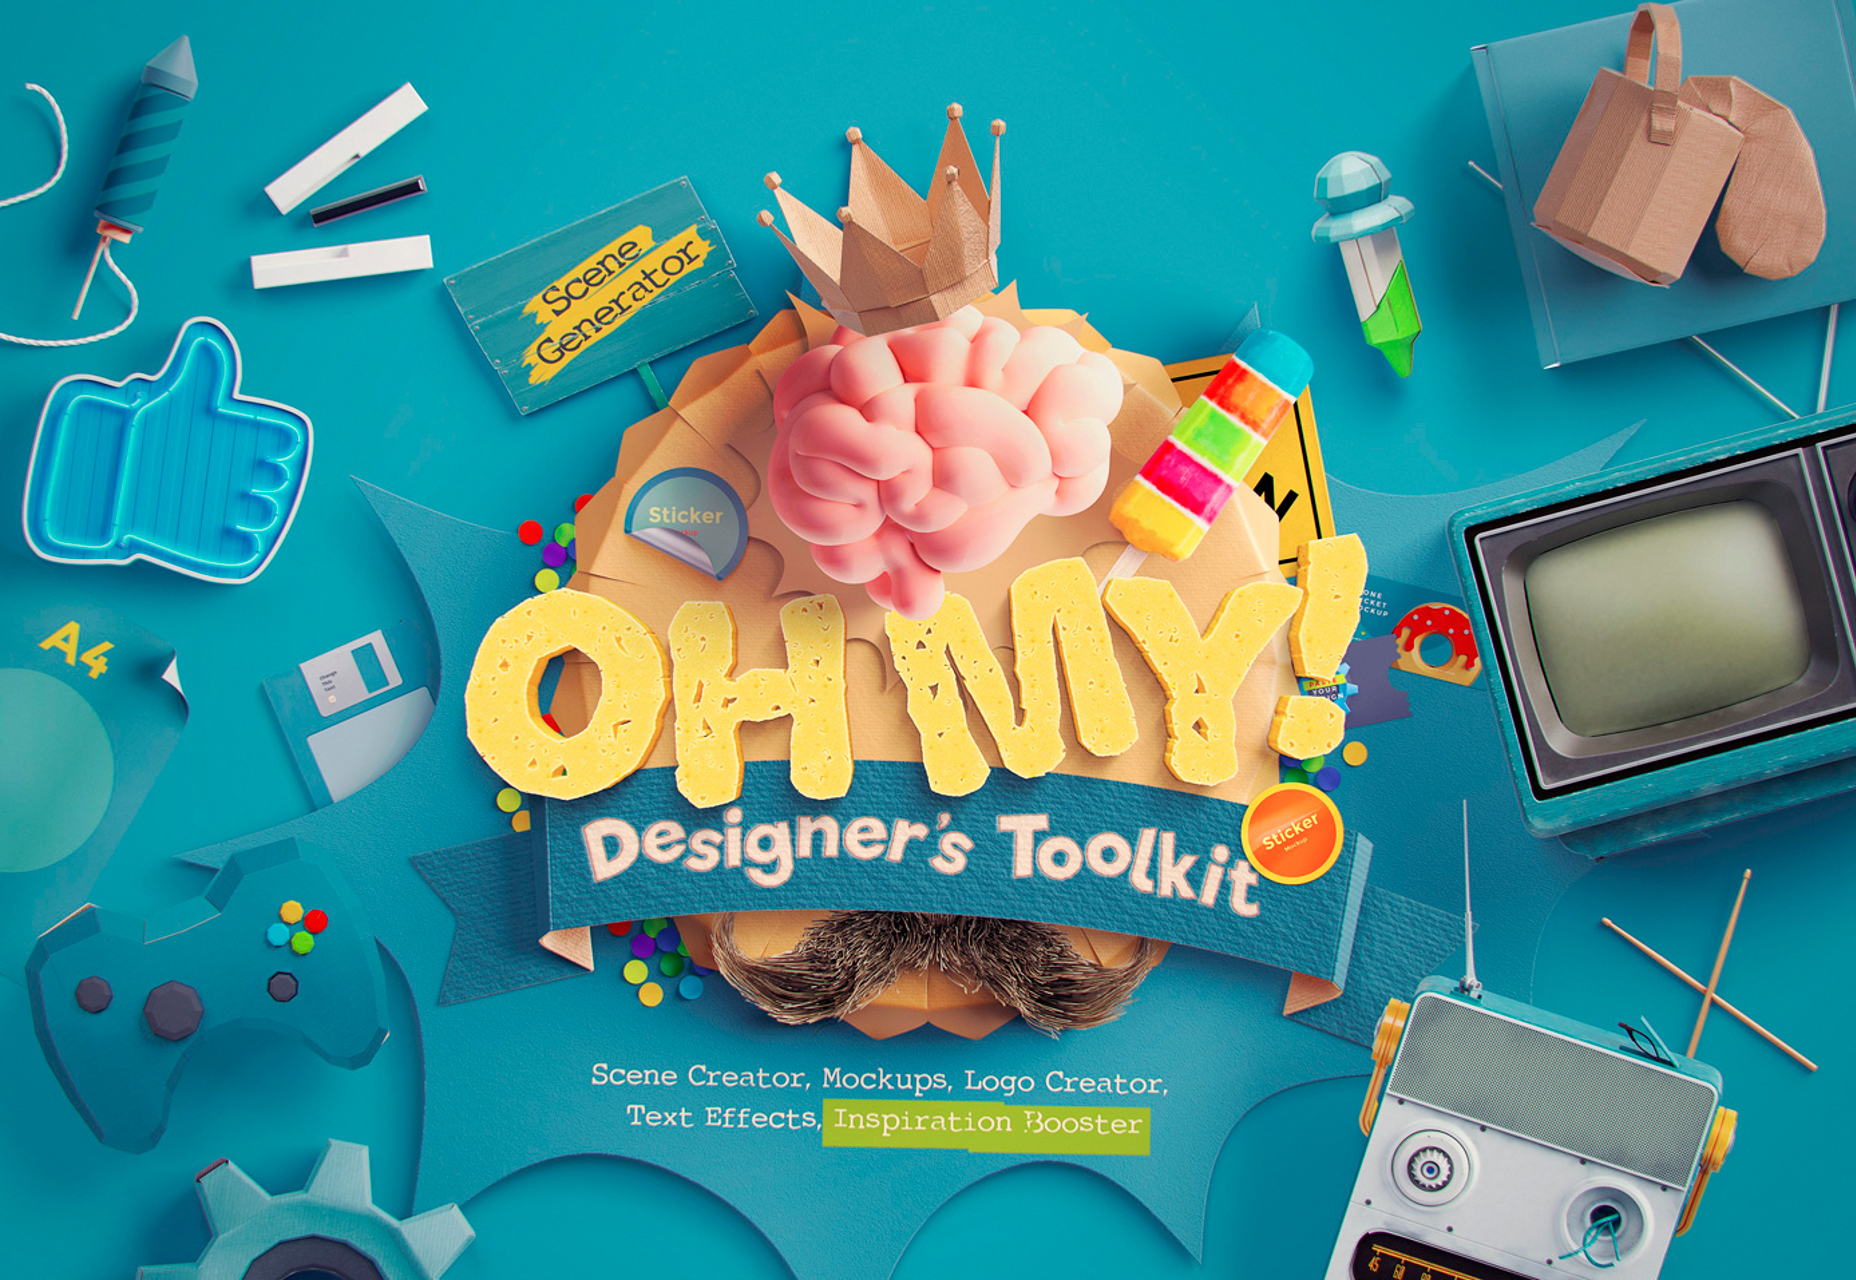 Oh My! Huge Designer's Toolkit